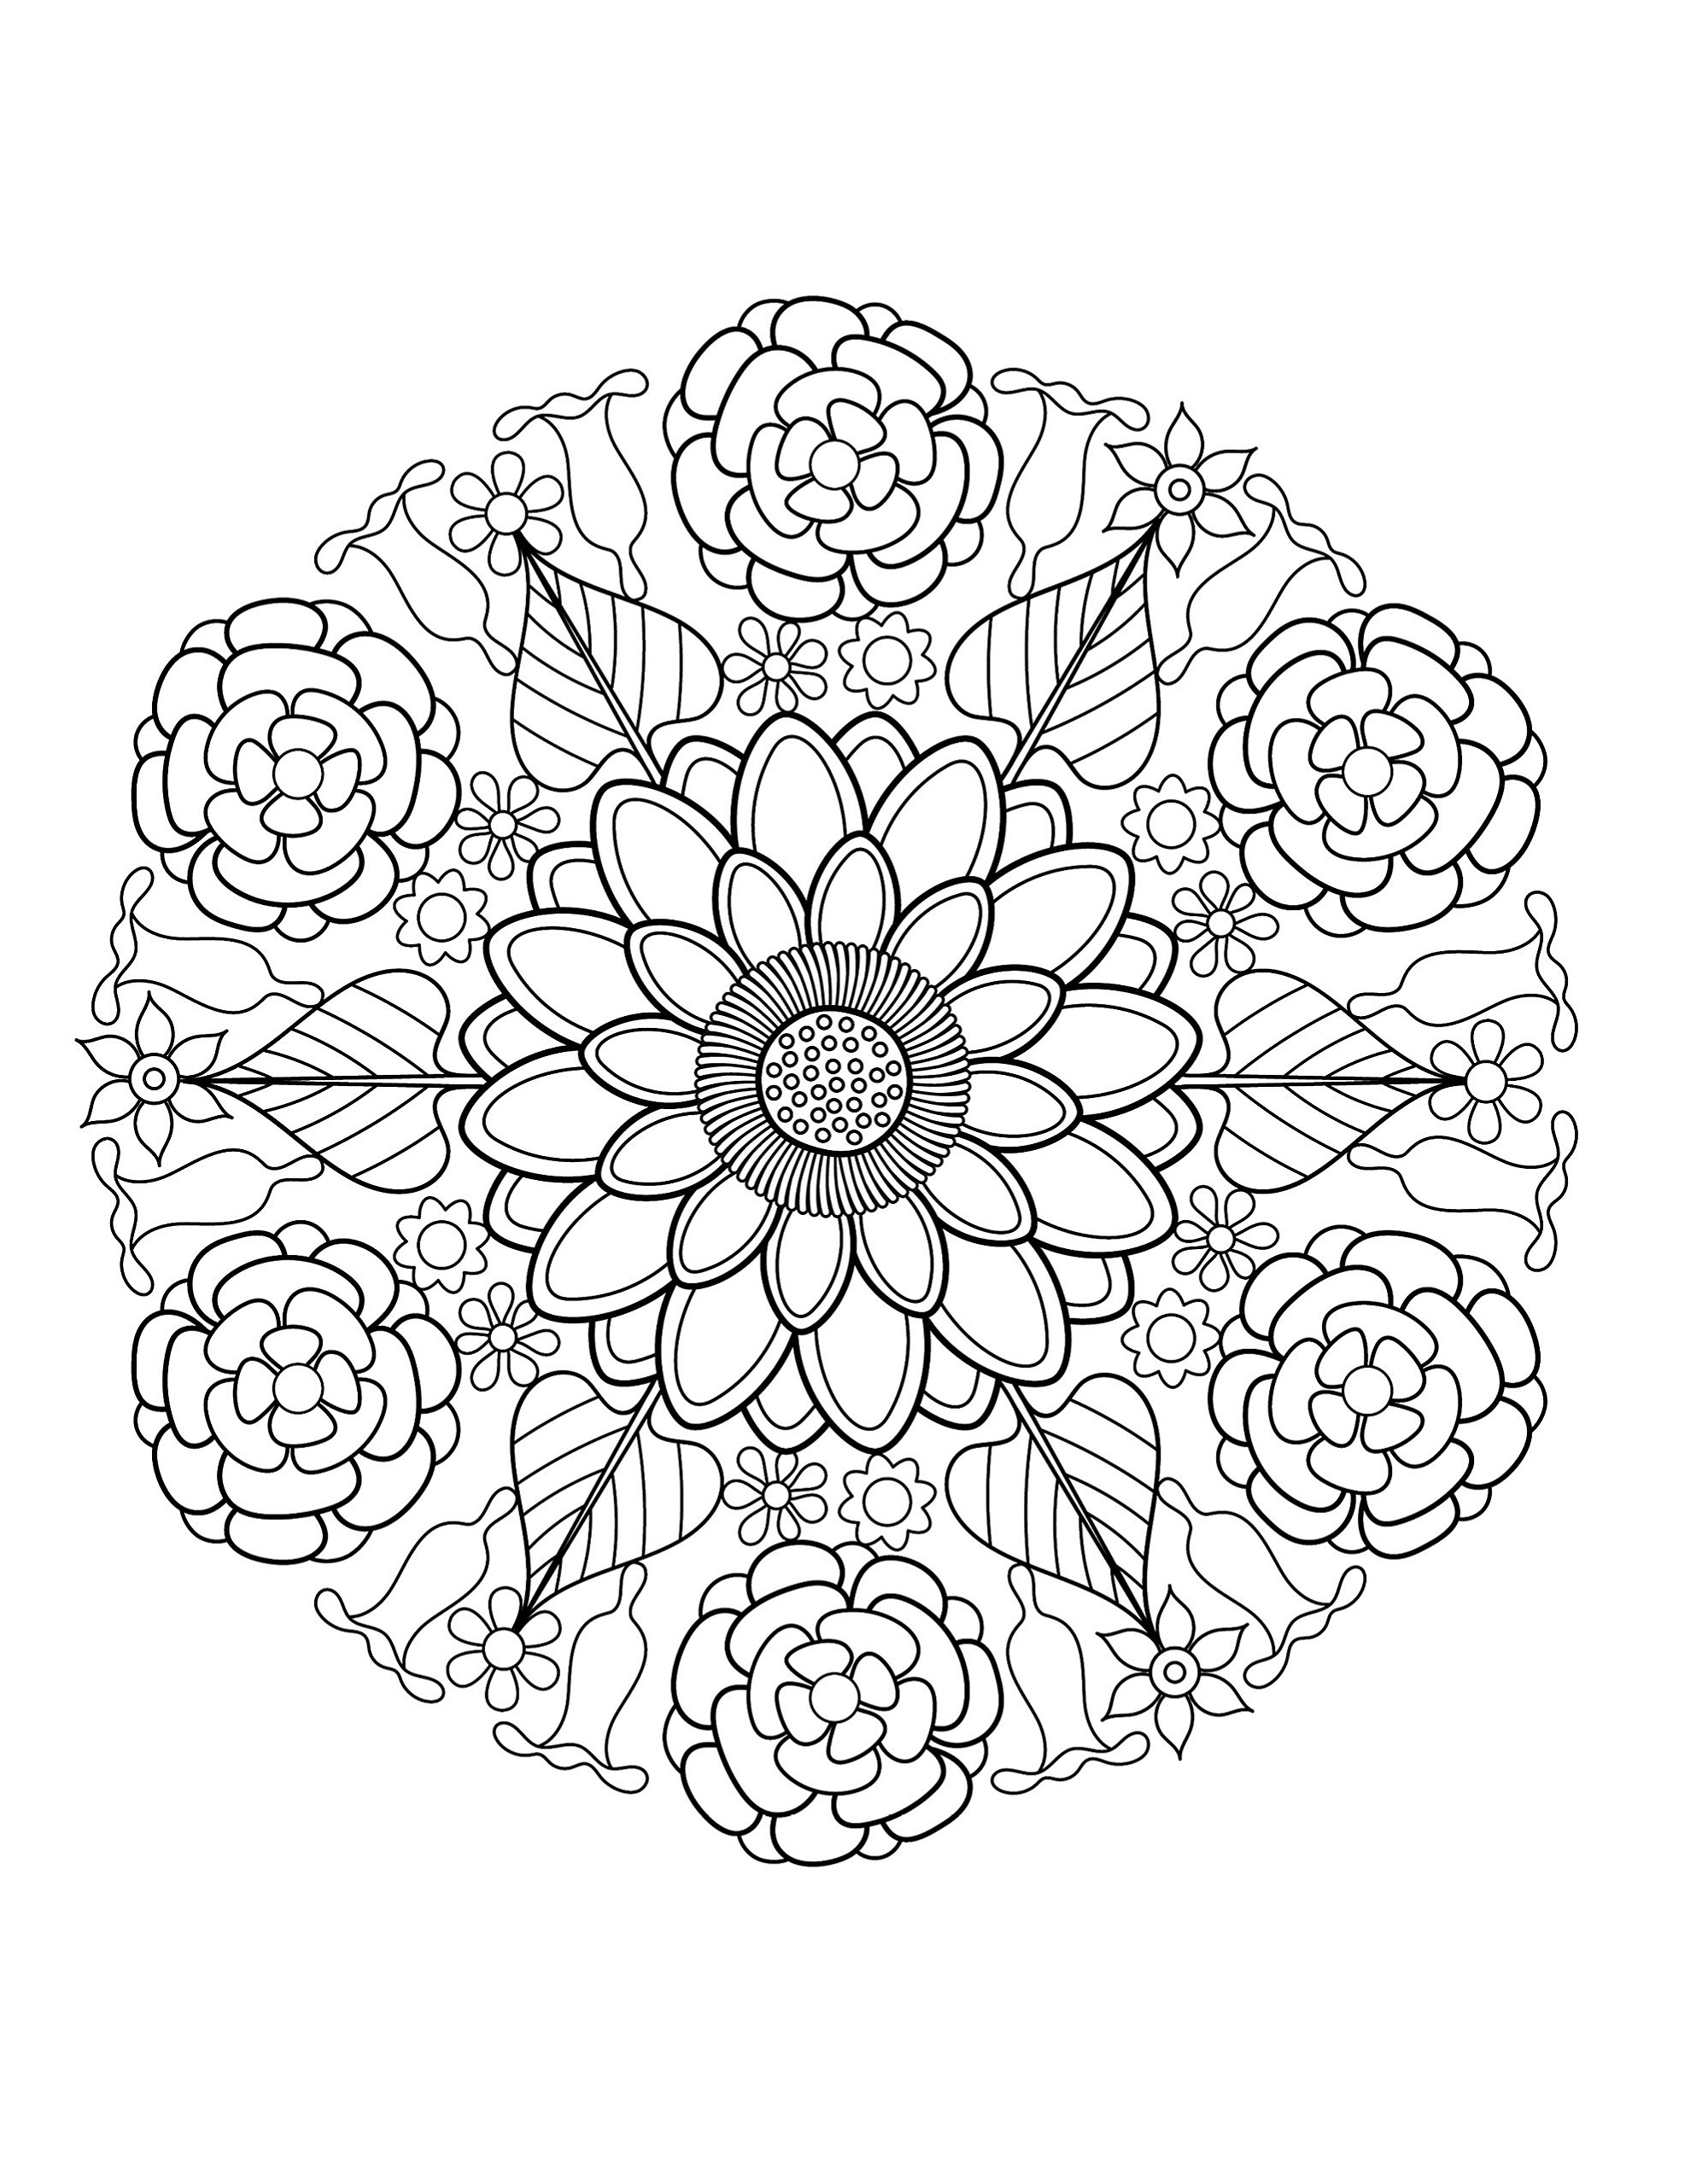 Mandala Coloring Book Flower